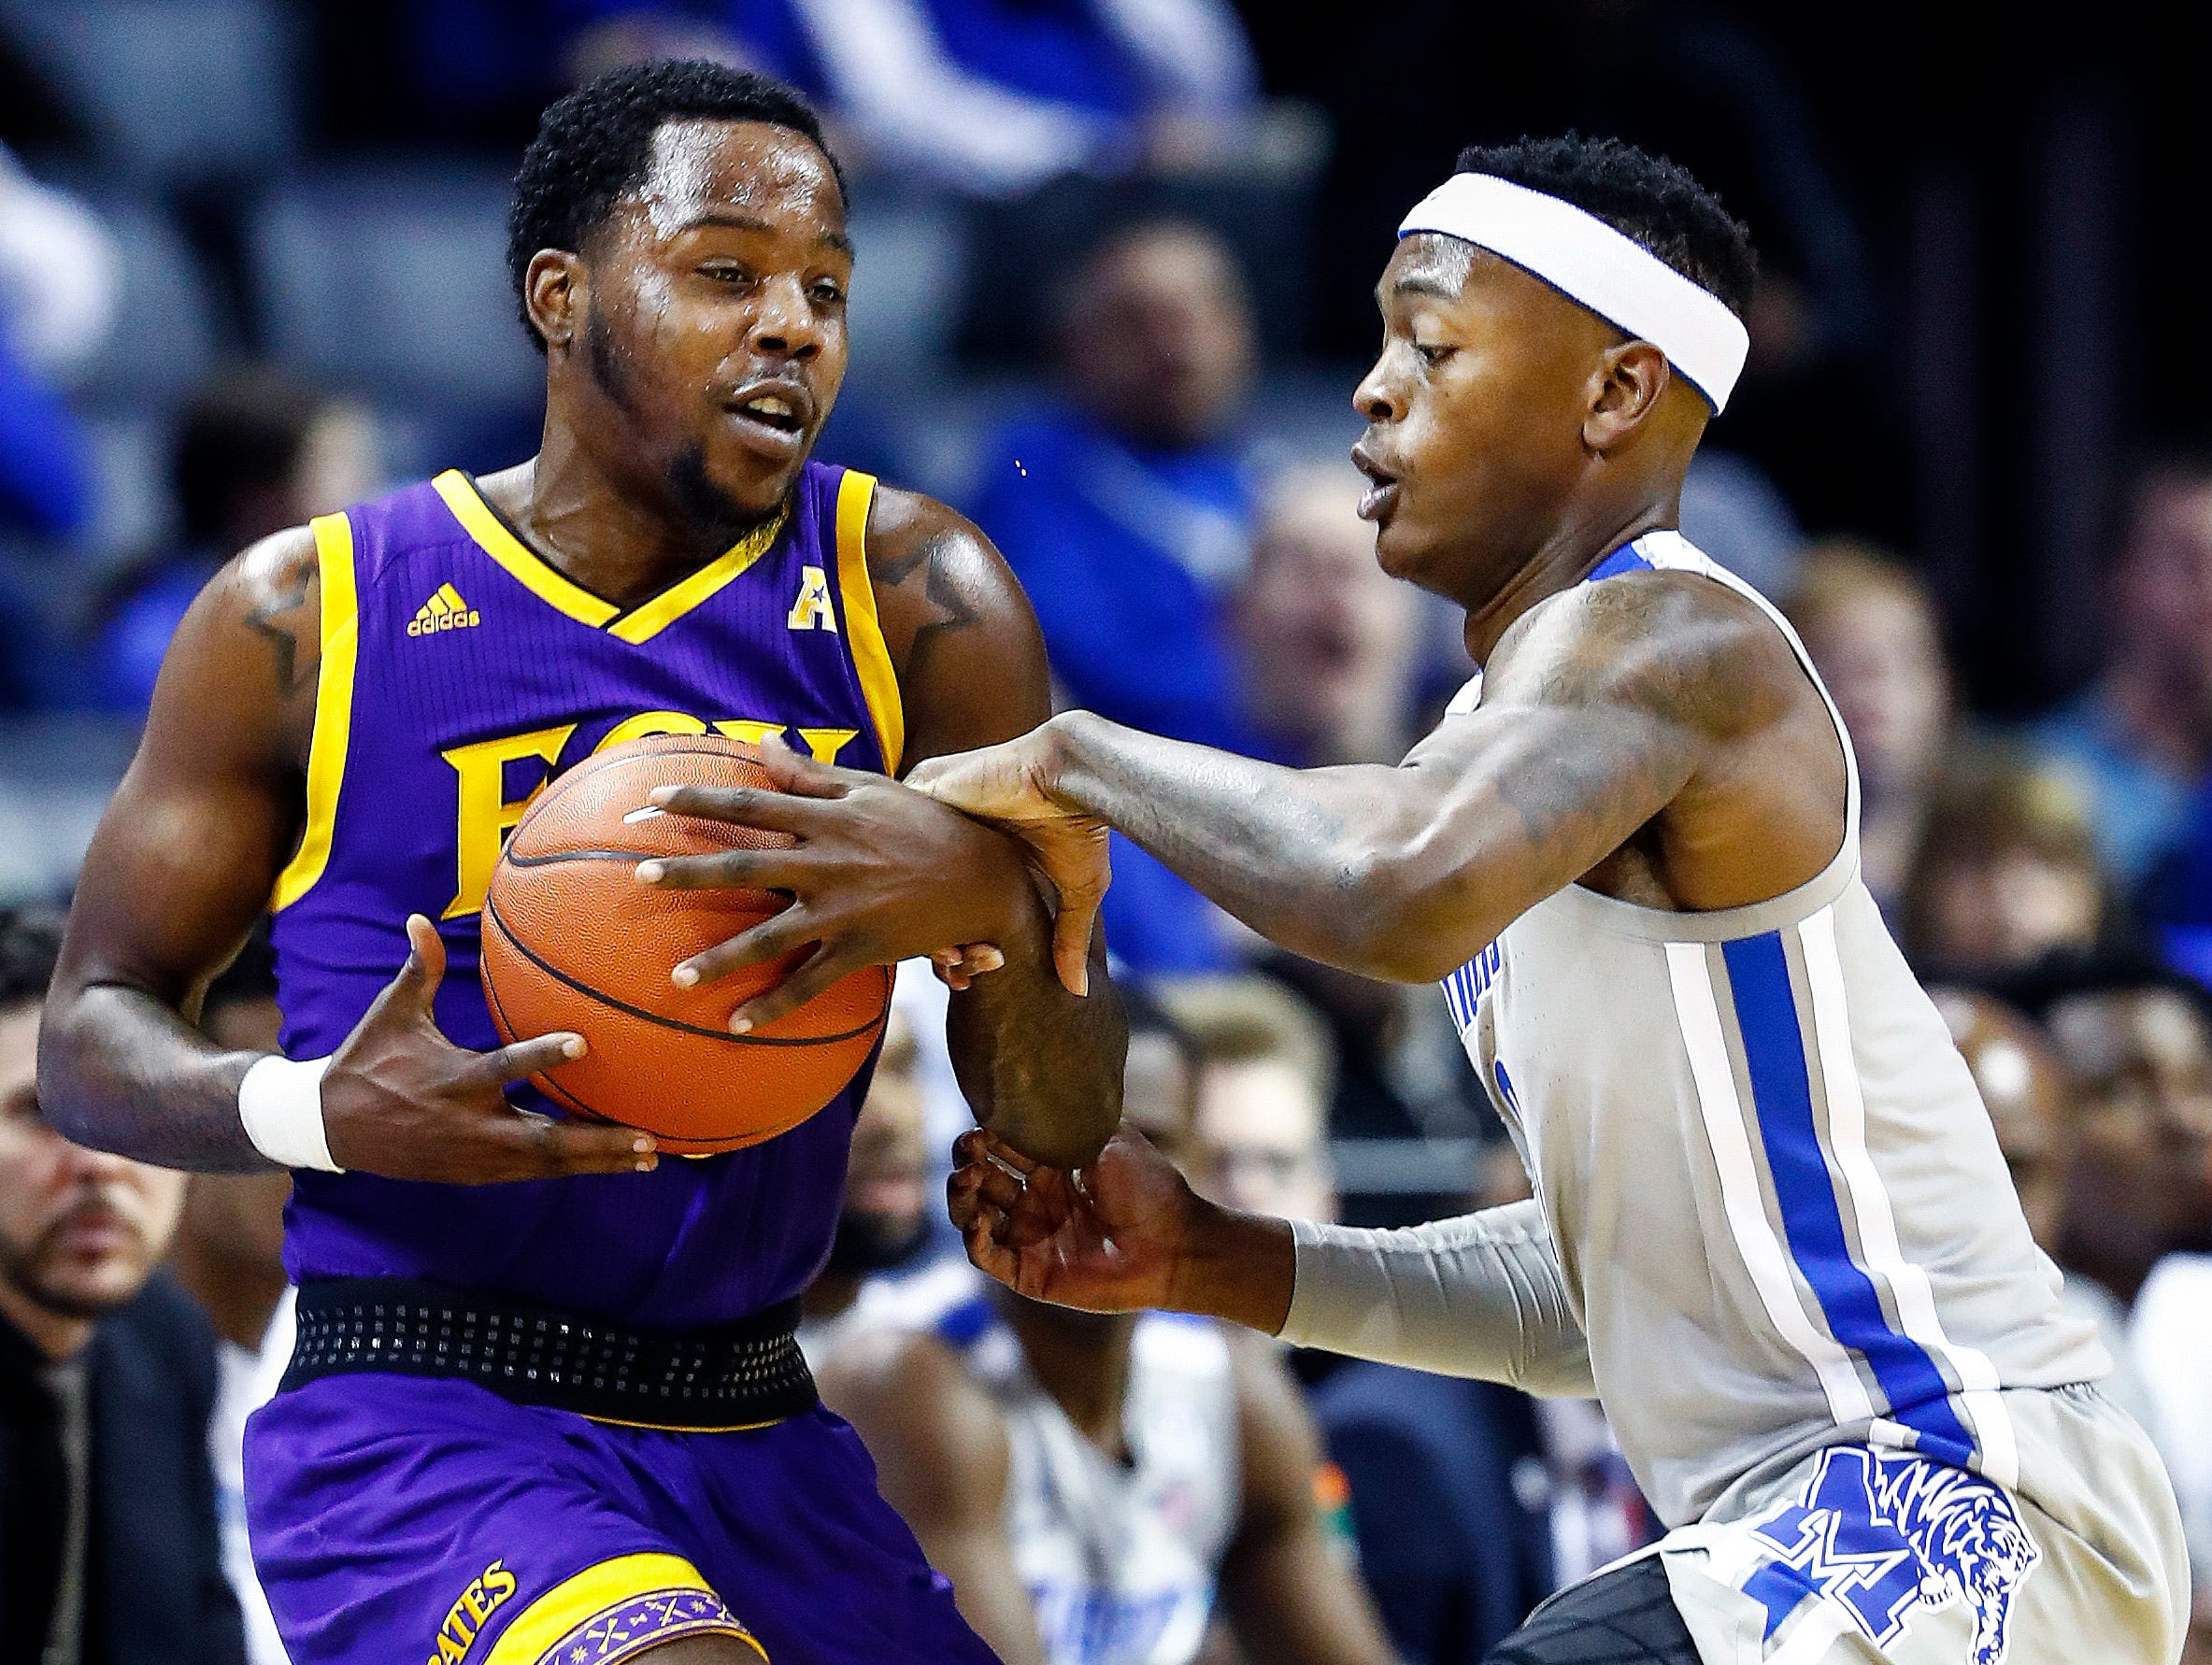 Memphis defender Kyvon Davenport (right) applies defensive pressure to ECU guard Isaac Fleming (left) during action at the FedExForum, Thursday, January 10, 2019.